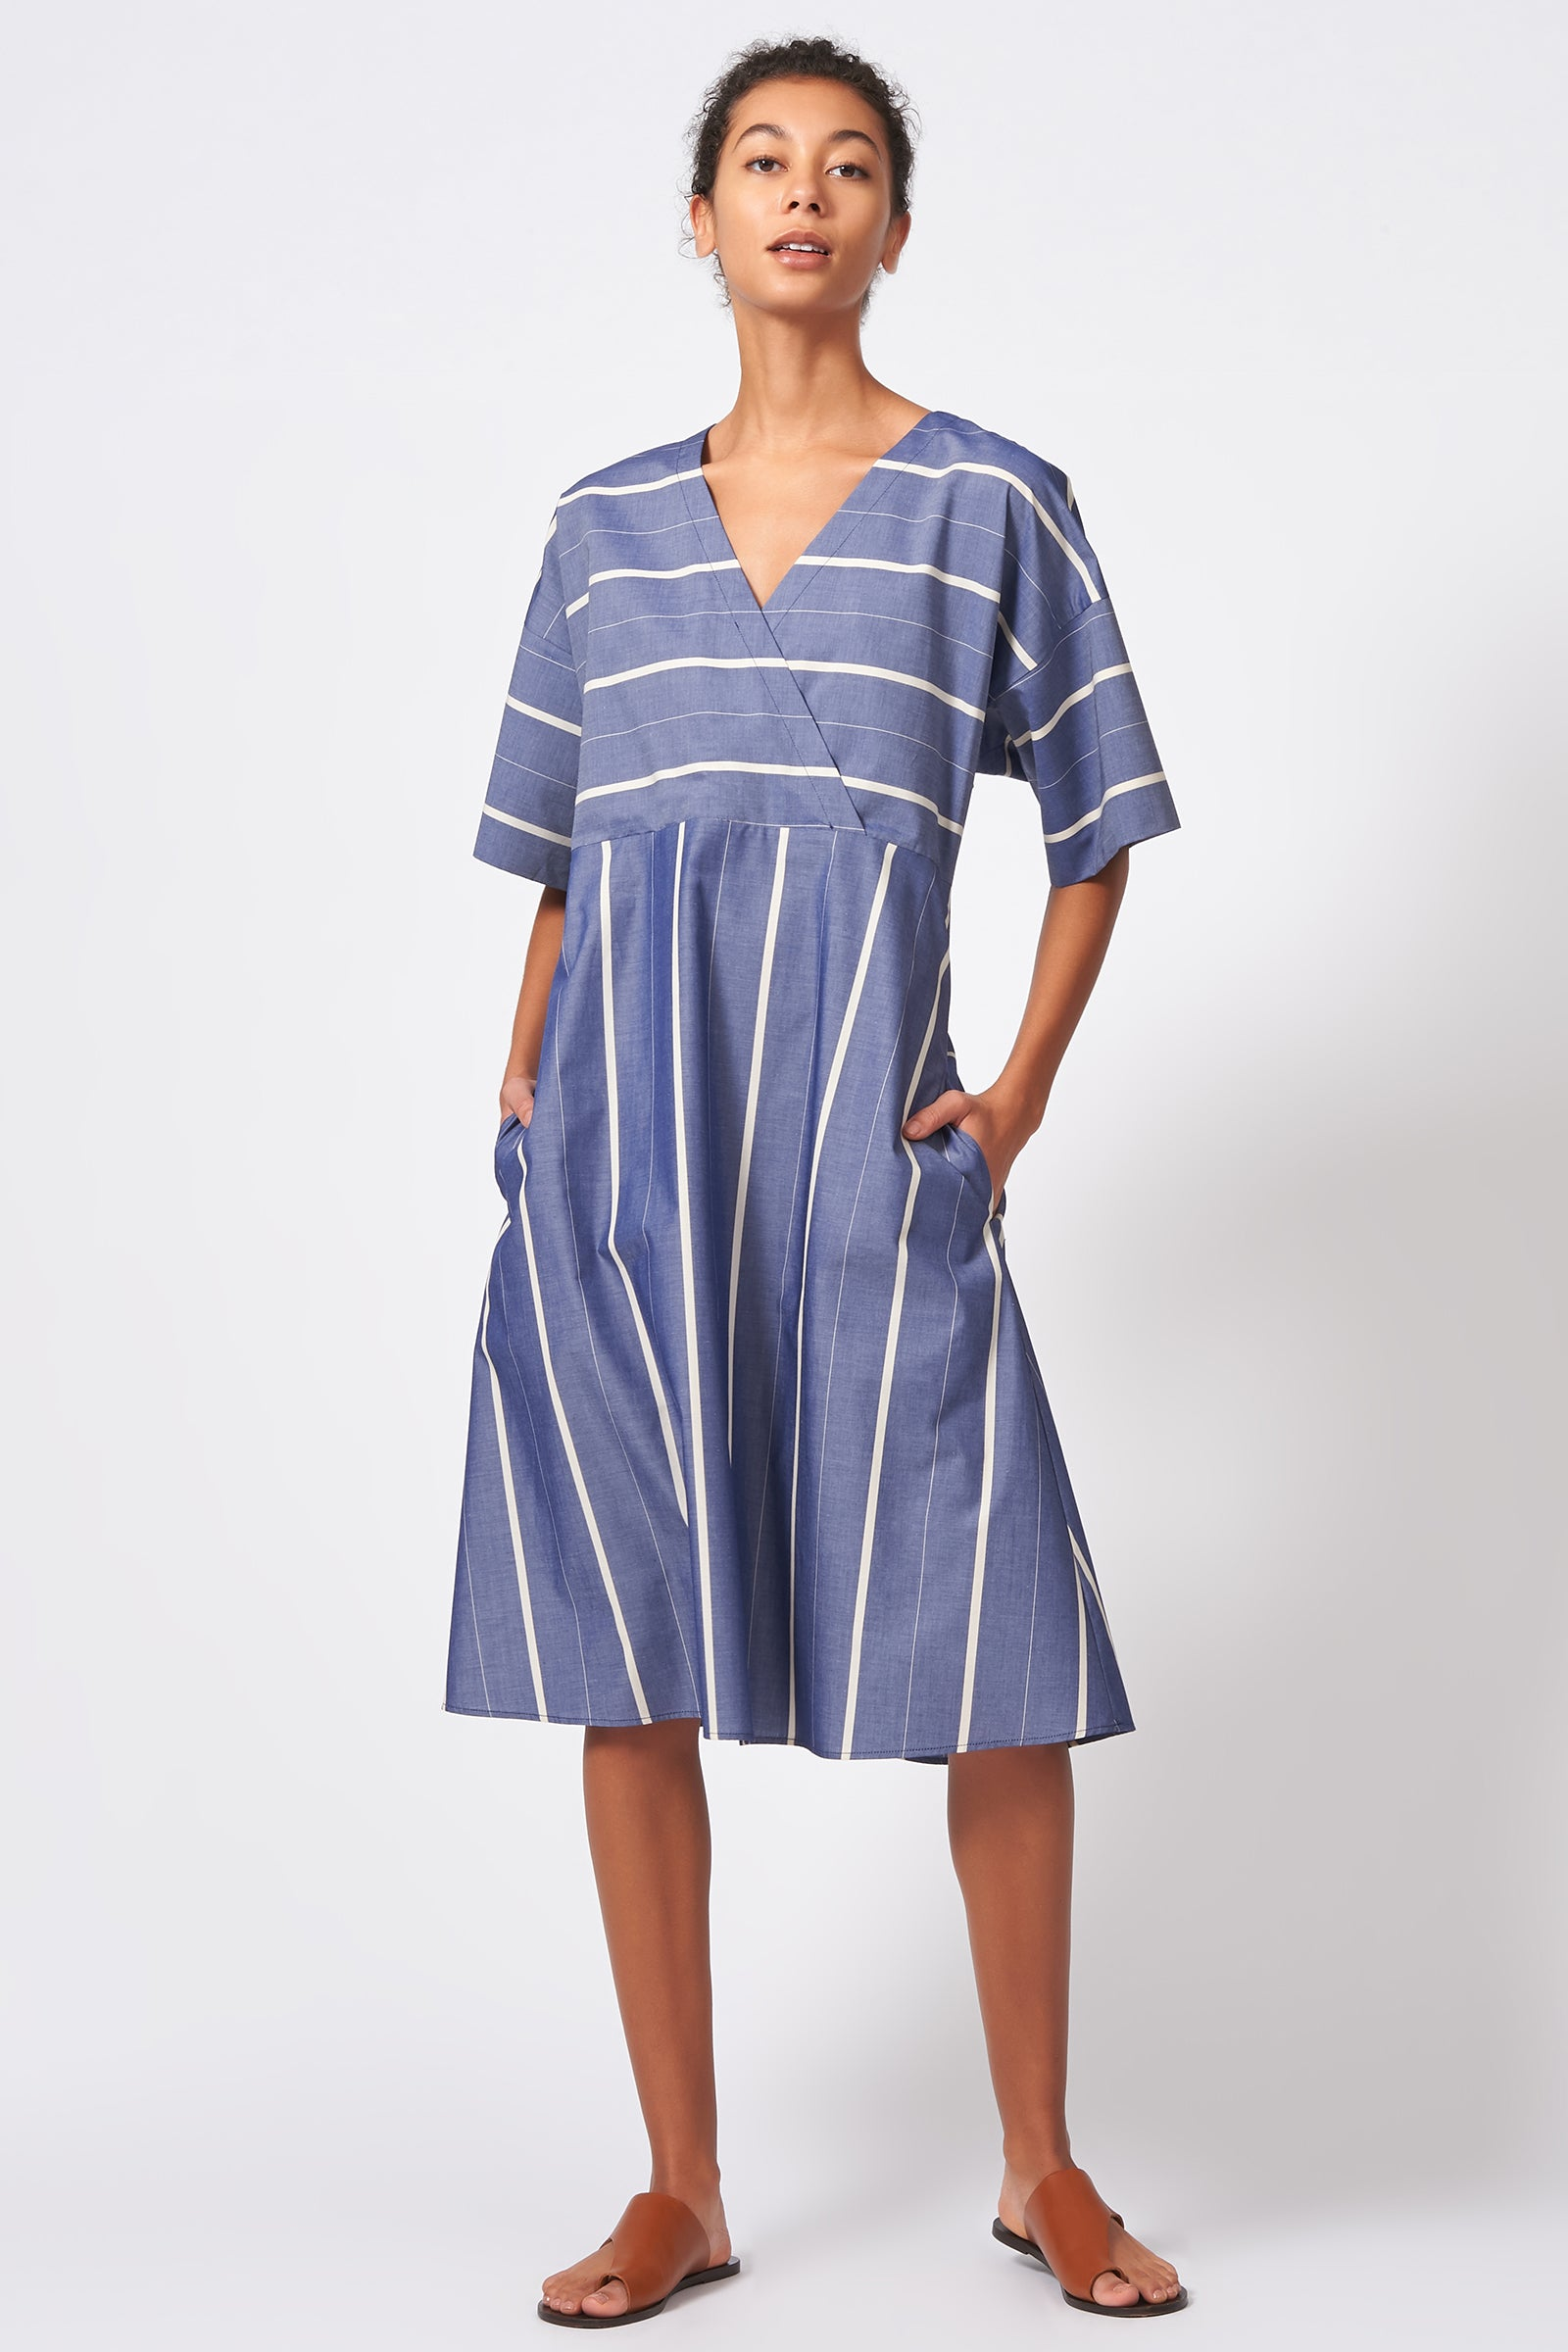 Kal Rieman Cross Front Dress in Chambray Stripe on Model Front Full View